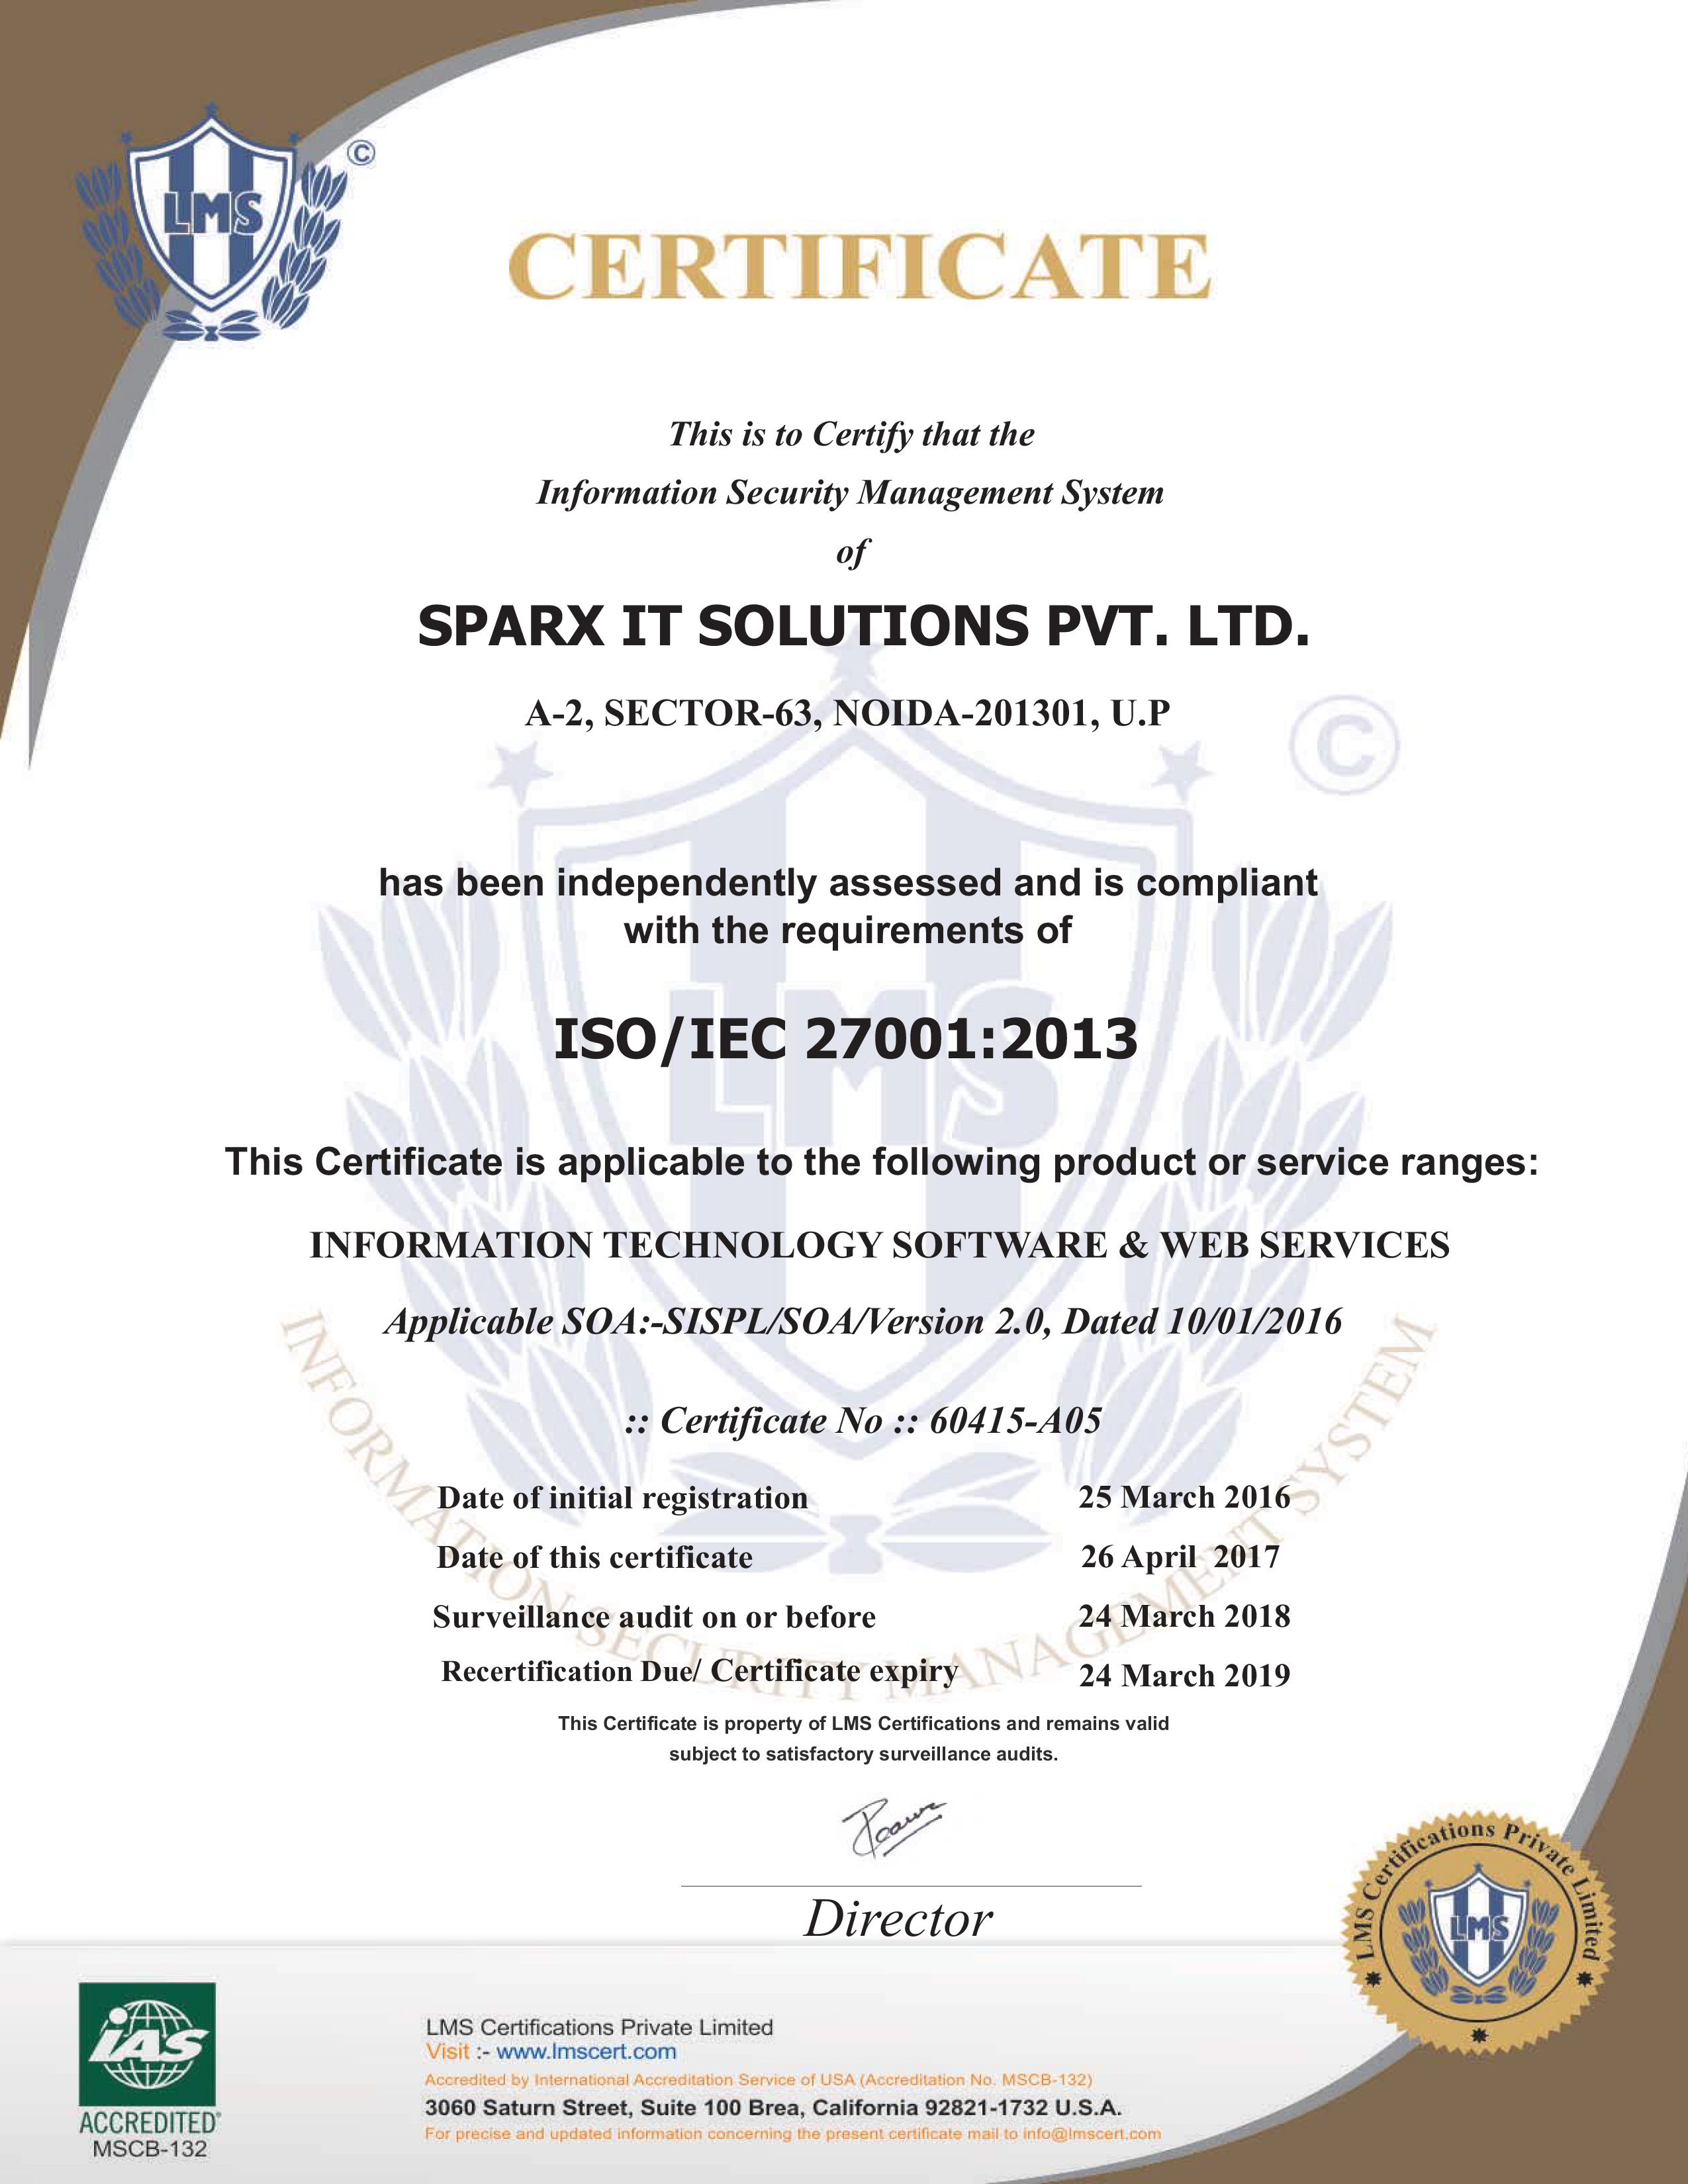 ISO 900 :2008